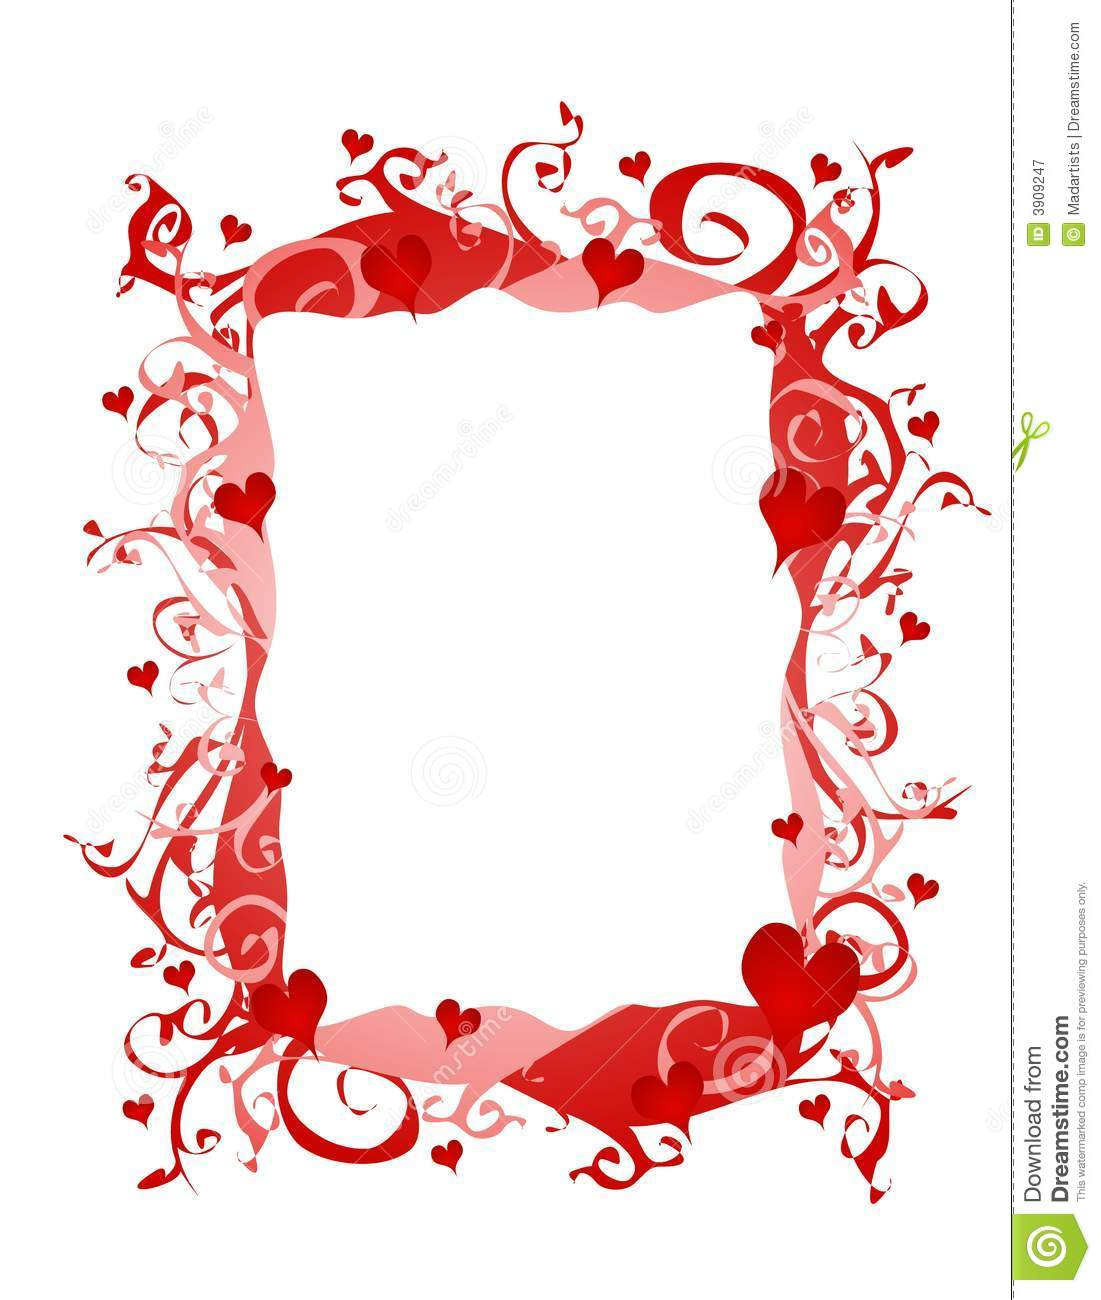 An abstract valentine hearts frame or border in red and pink. If you ...